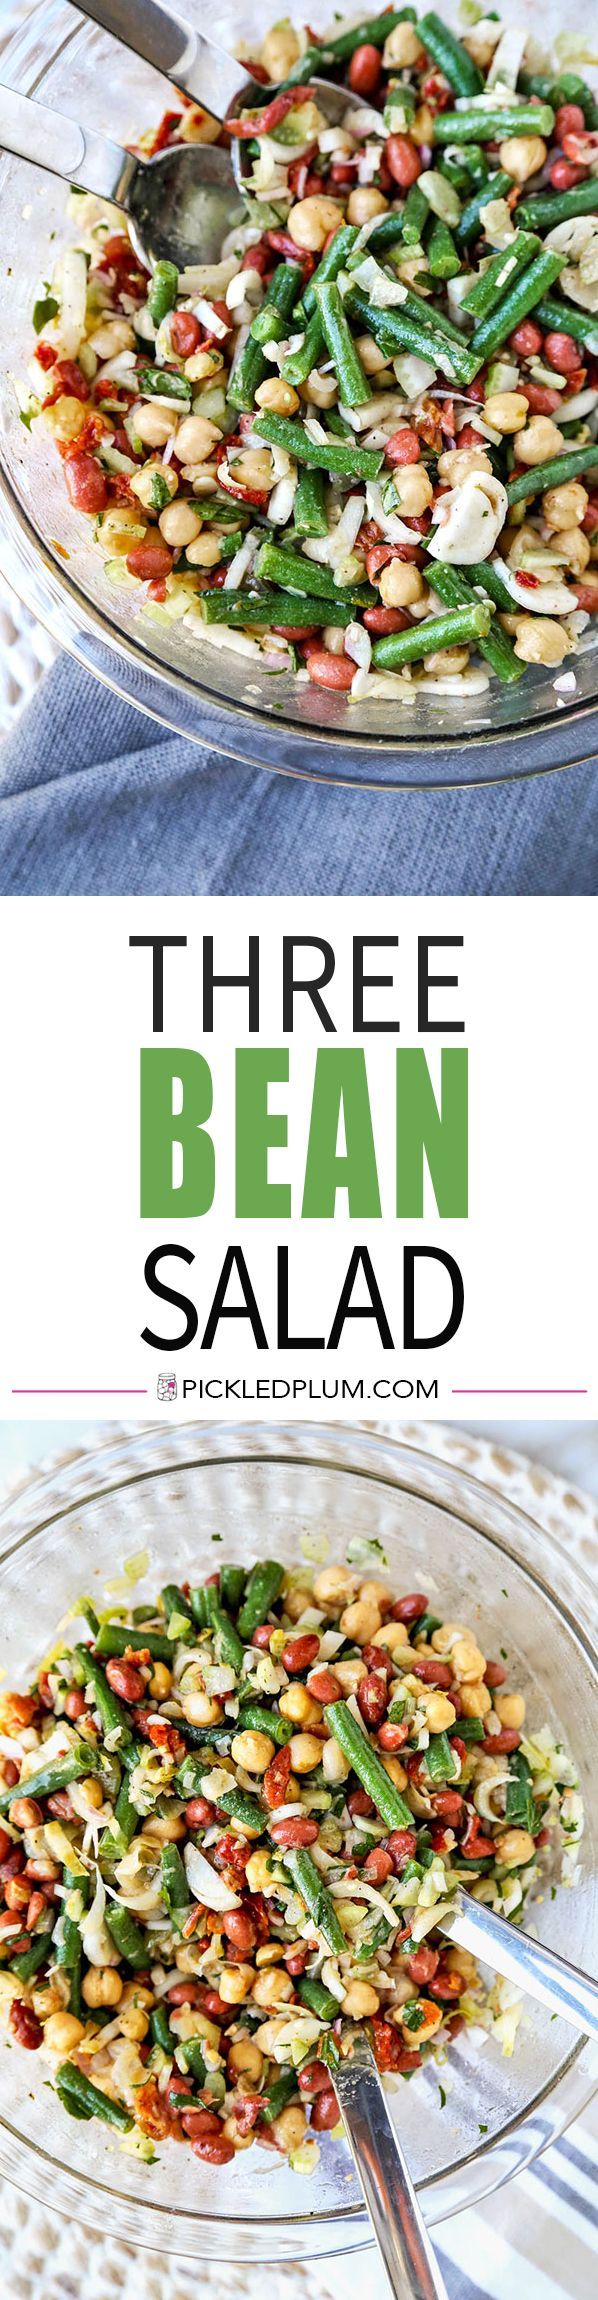 15 Minute Three Bean Salad Pickled Plum Food And Drinks Recipe Salad Recipes Healthy Dinner Diy Food Recipes Recipes